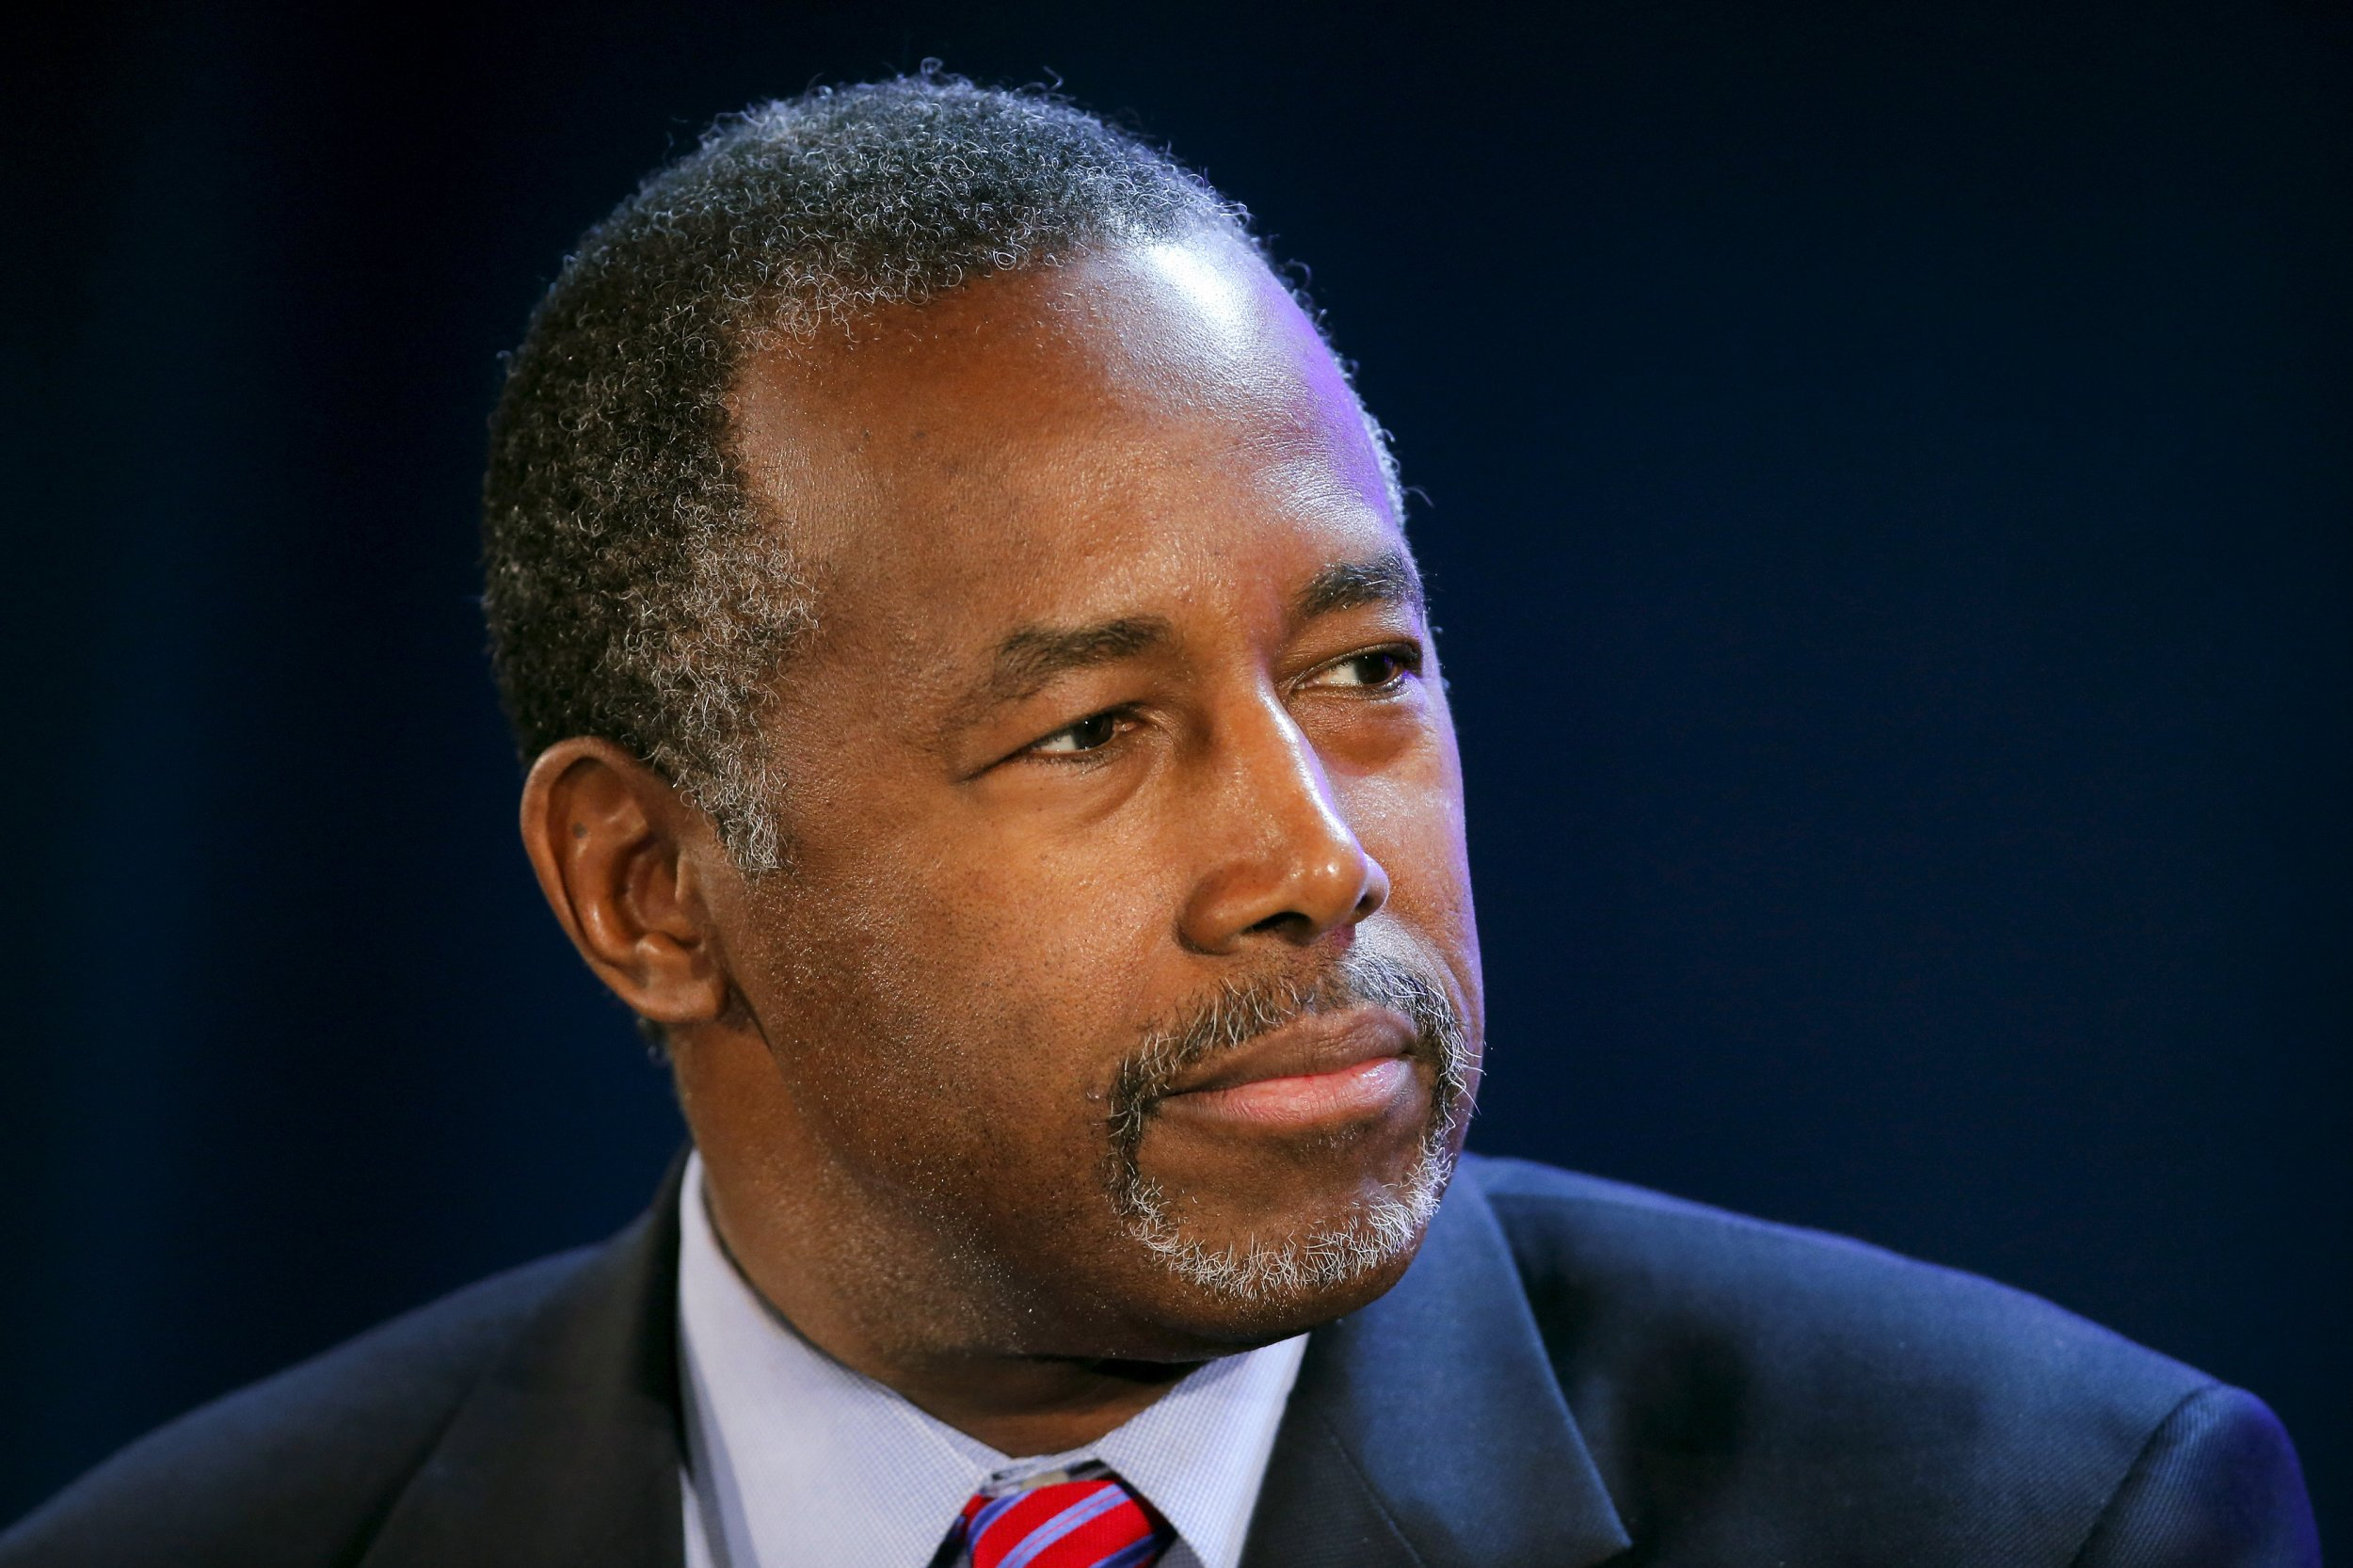 Ben_Carson_Suspend_Campaign_Florida_Clean_Clothes